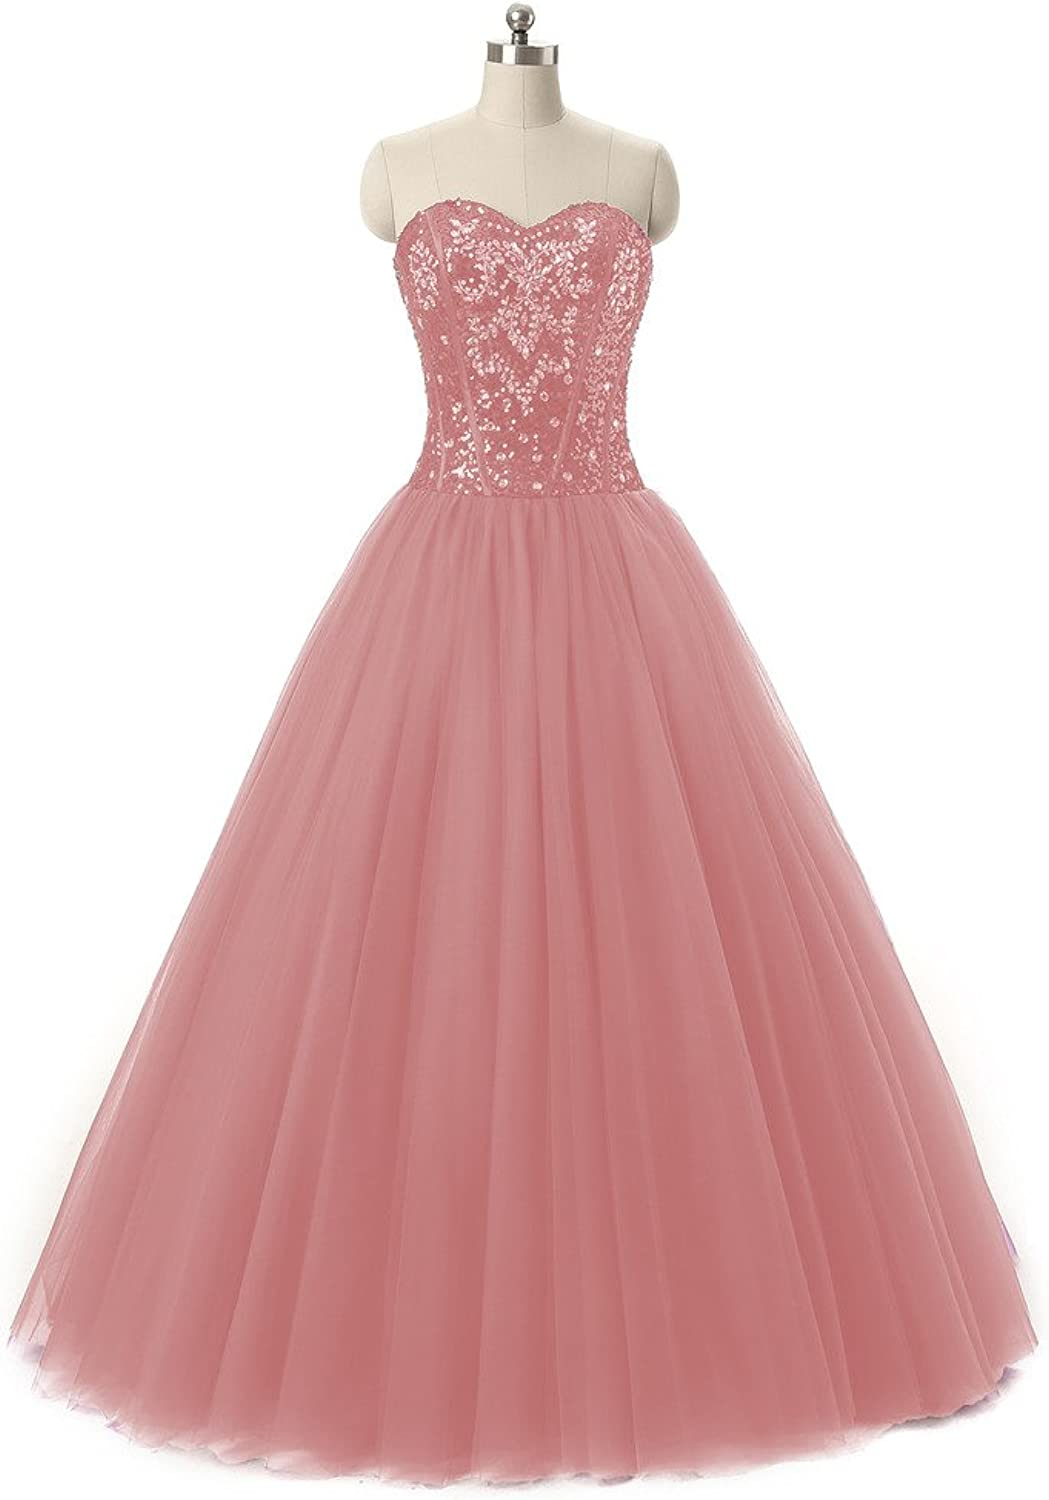 ANGELA Women's Sweetheart Beaded Long Tulle Prom Quinceanera Dresses